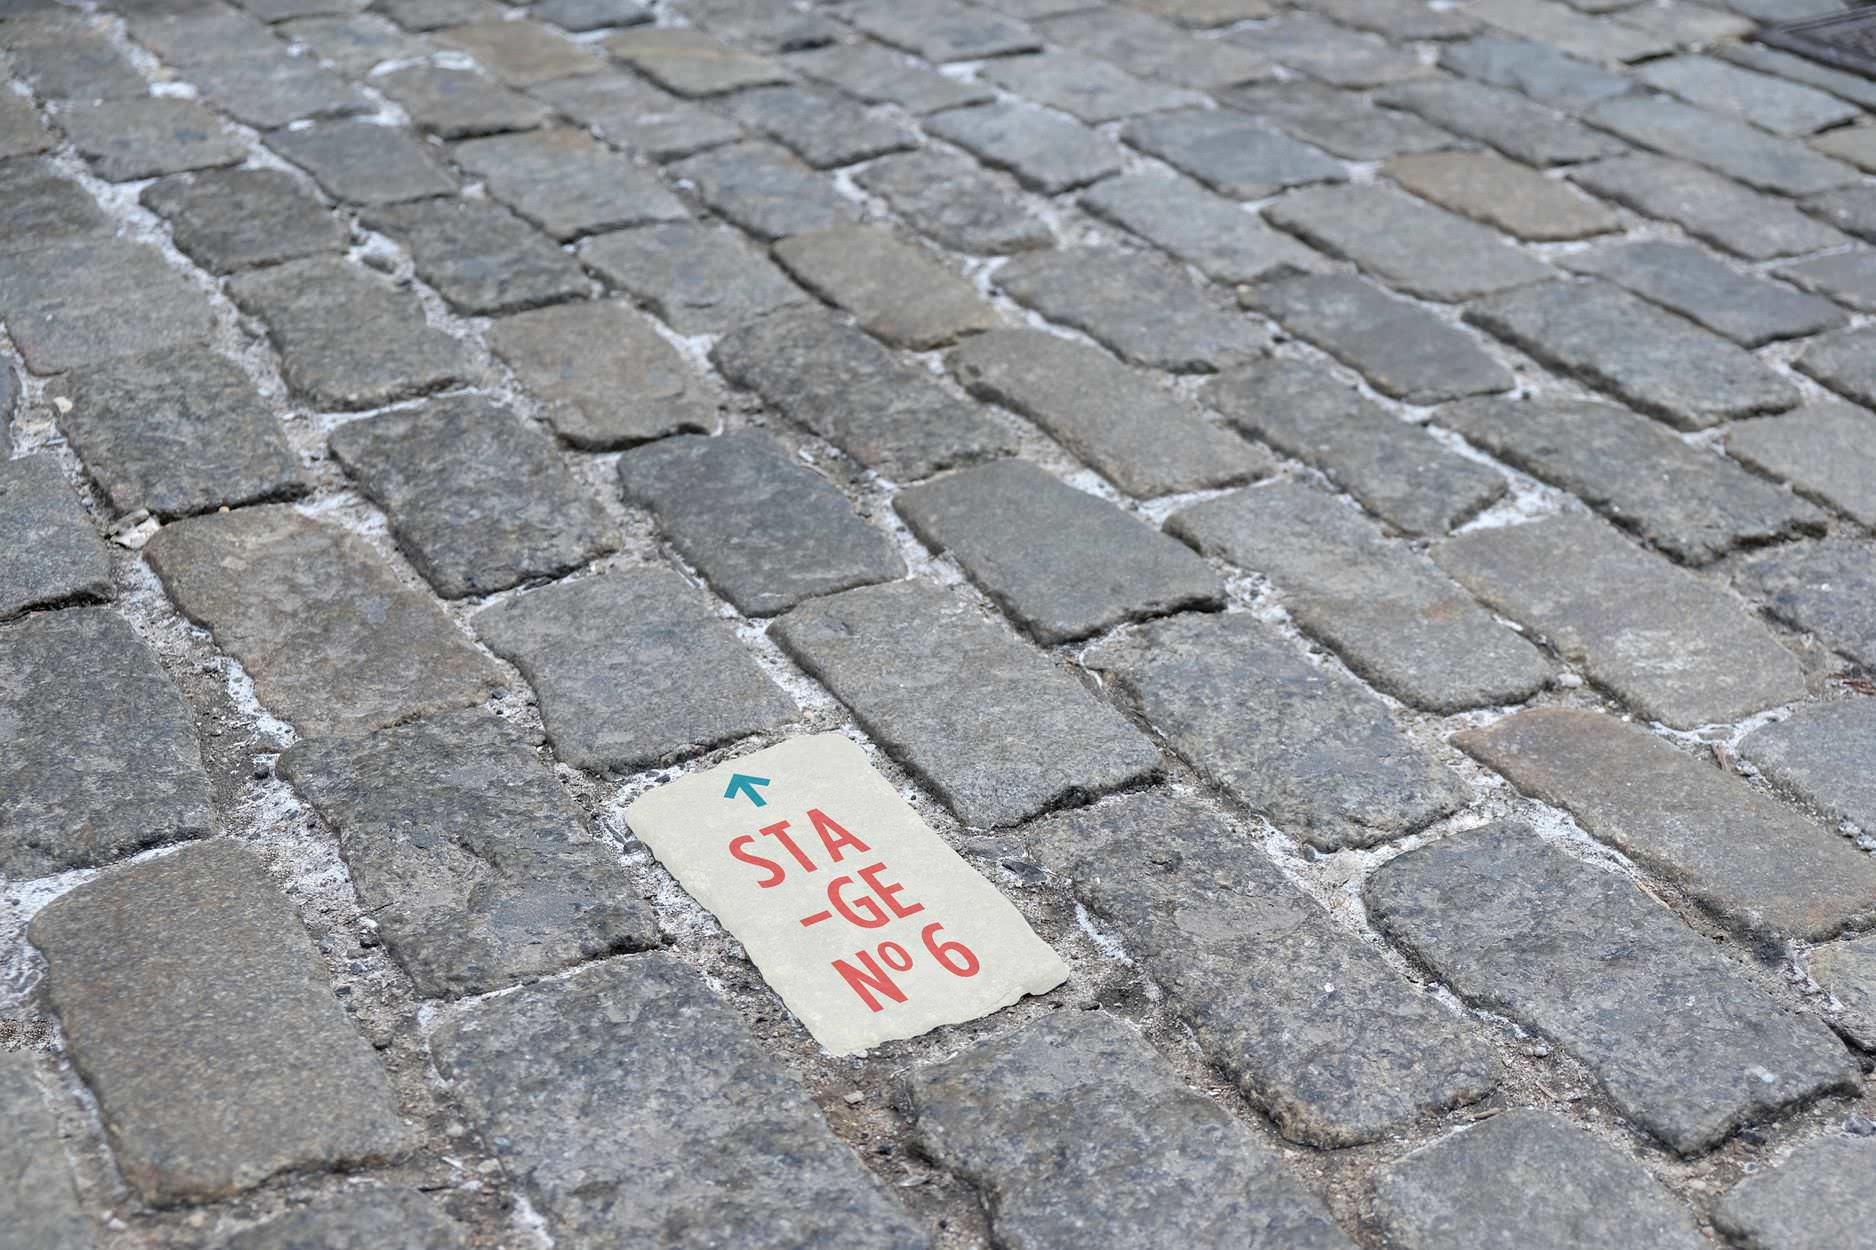 Pavement stone way finding for Festival No 6. Student brief at Shillington.